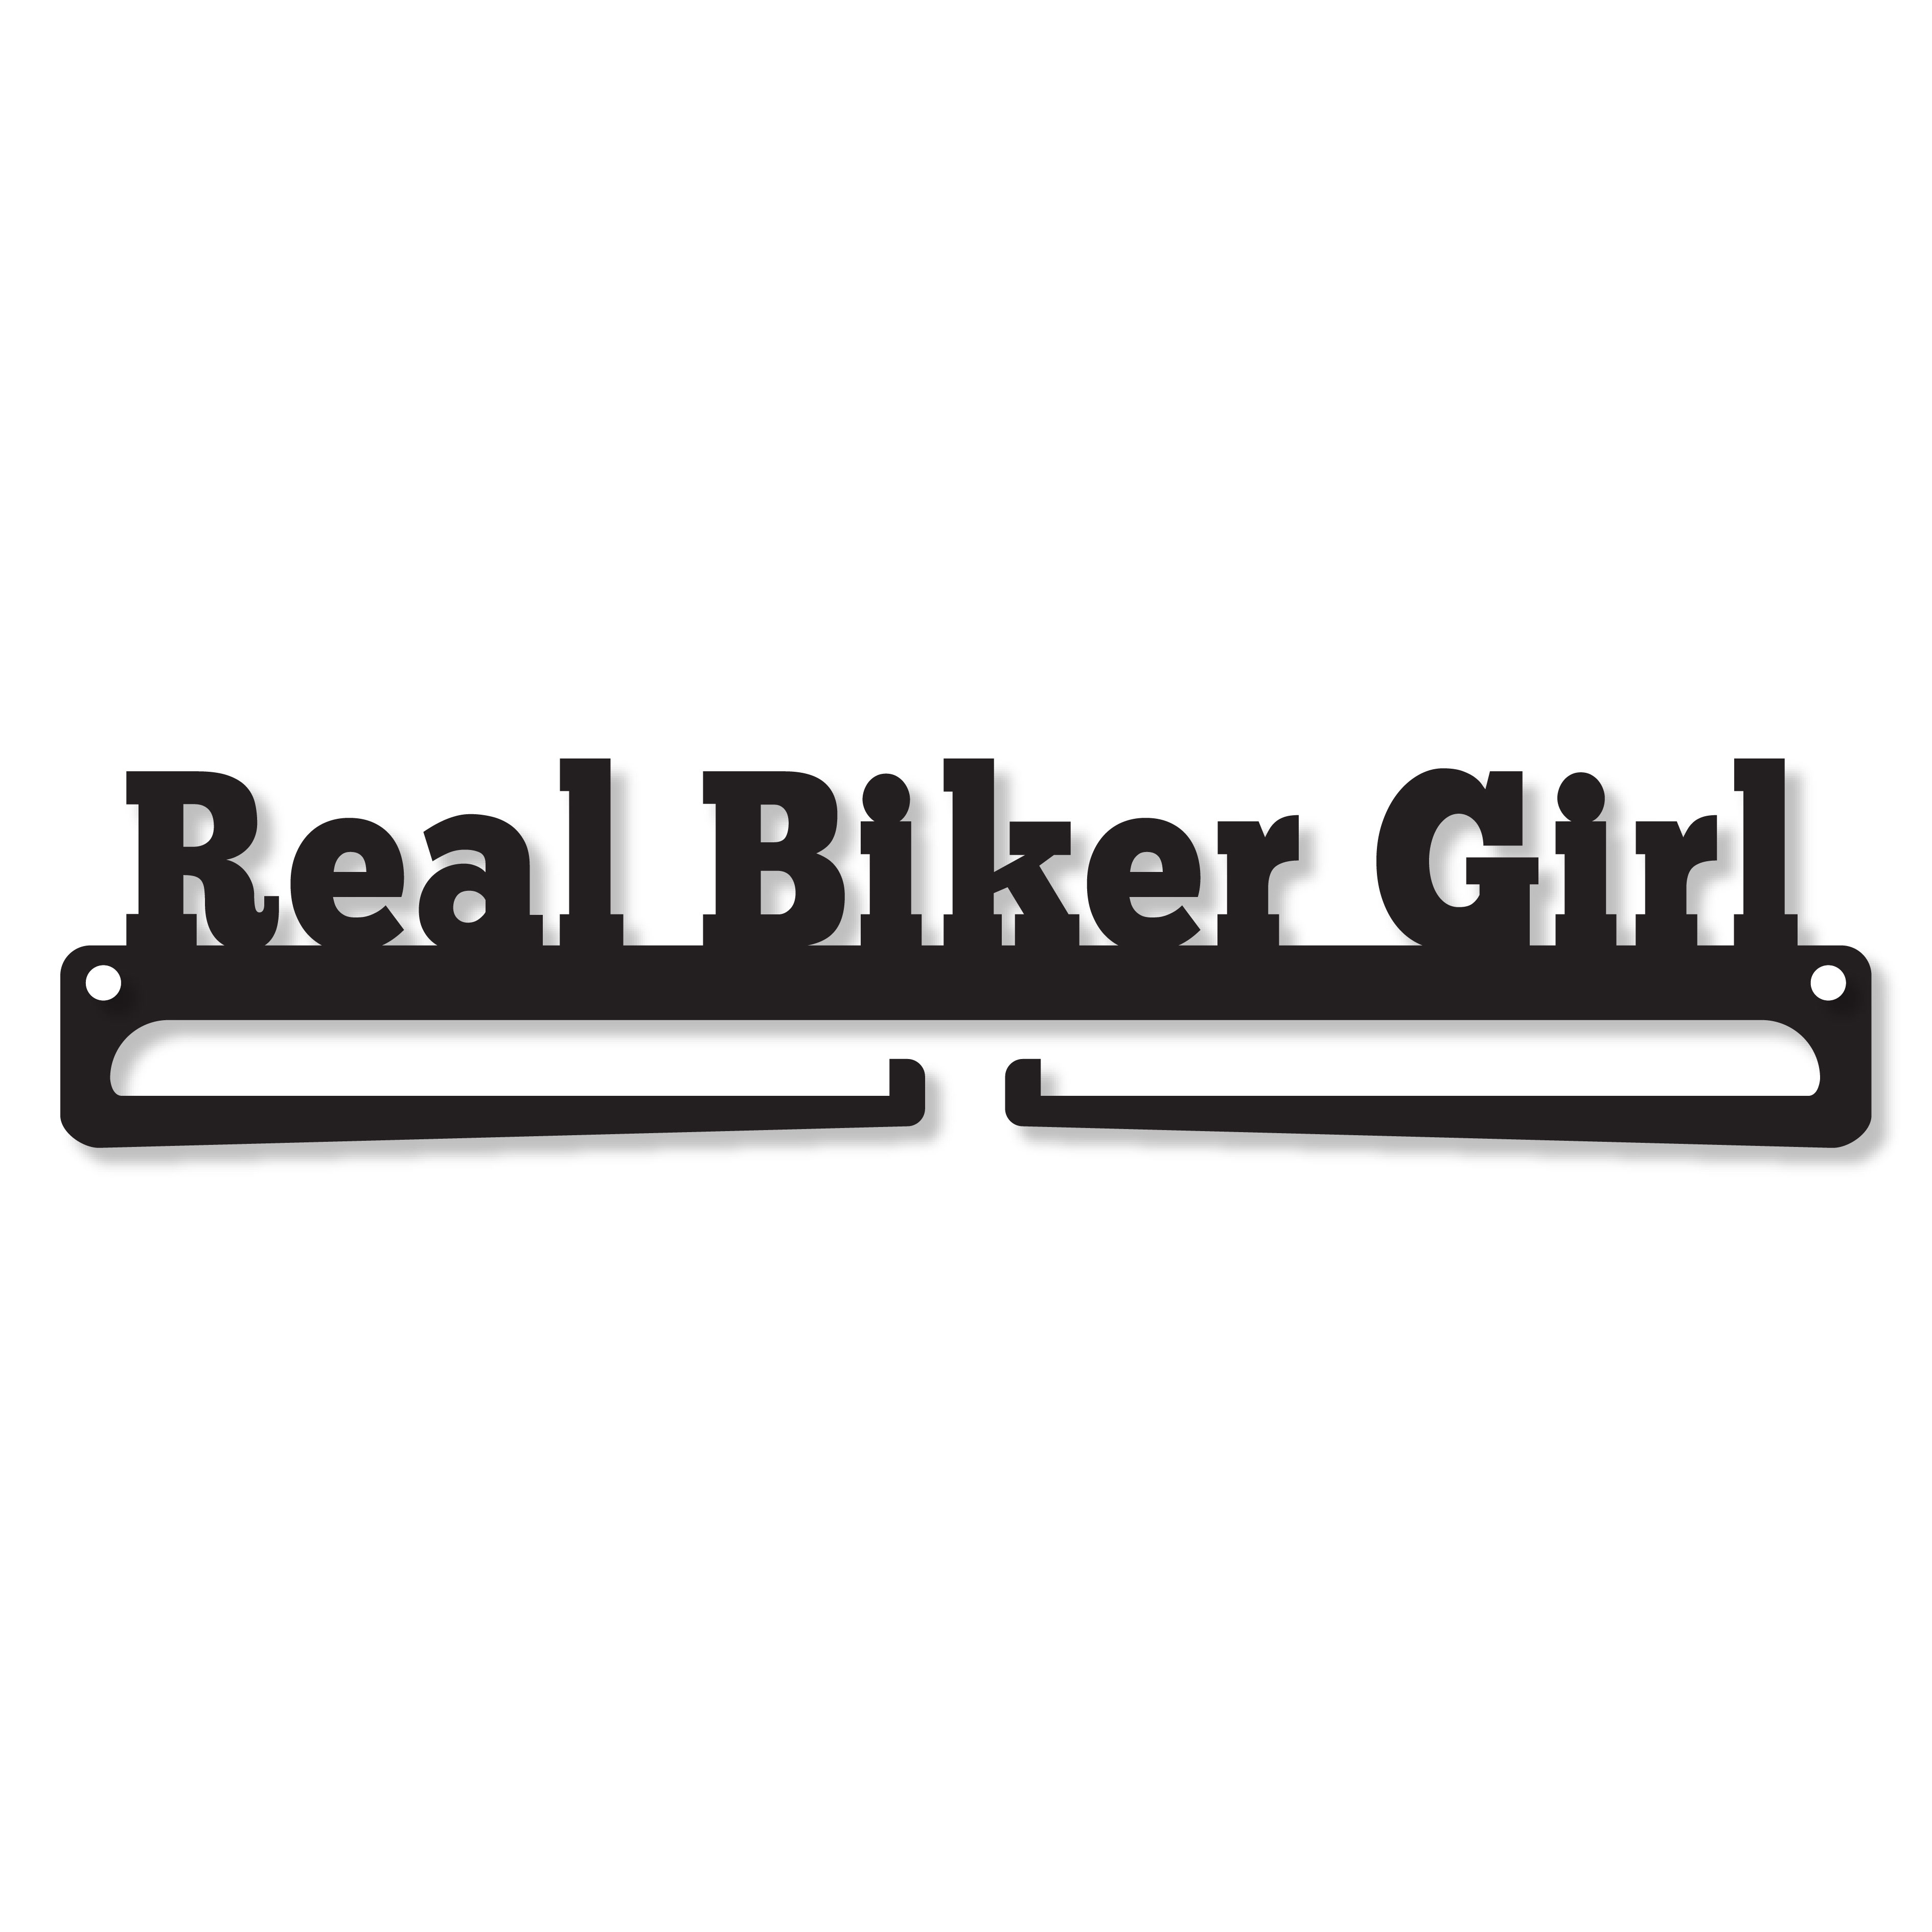 """Real Biker Girl"" Medal Display Hanger Holder"